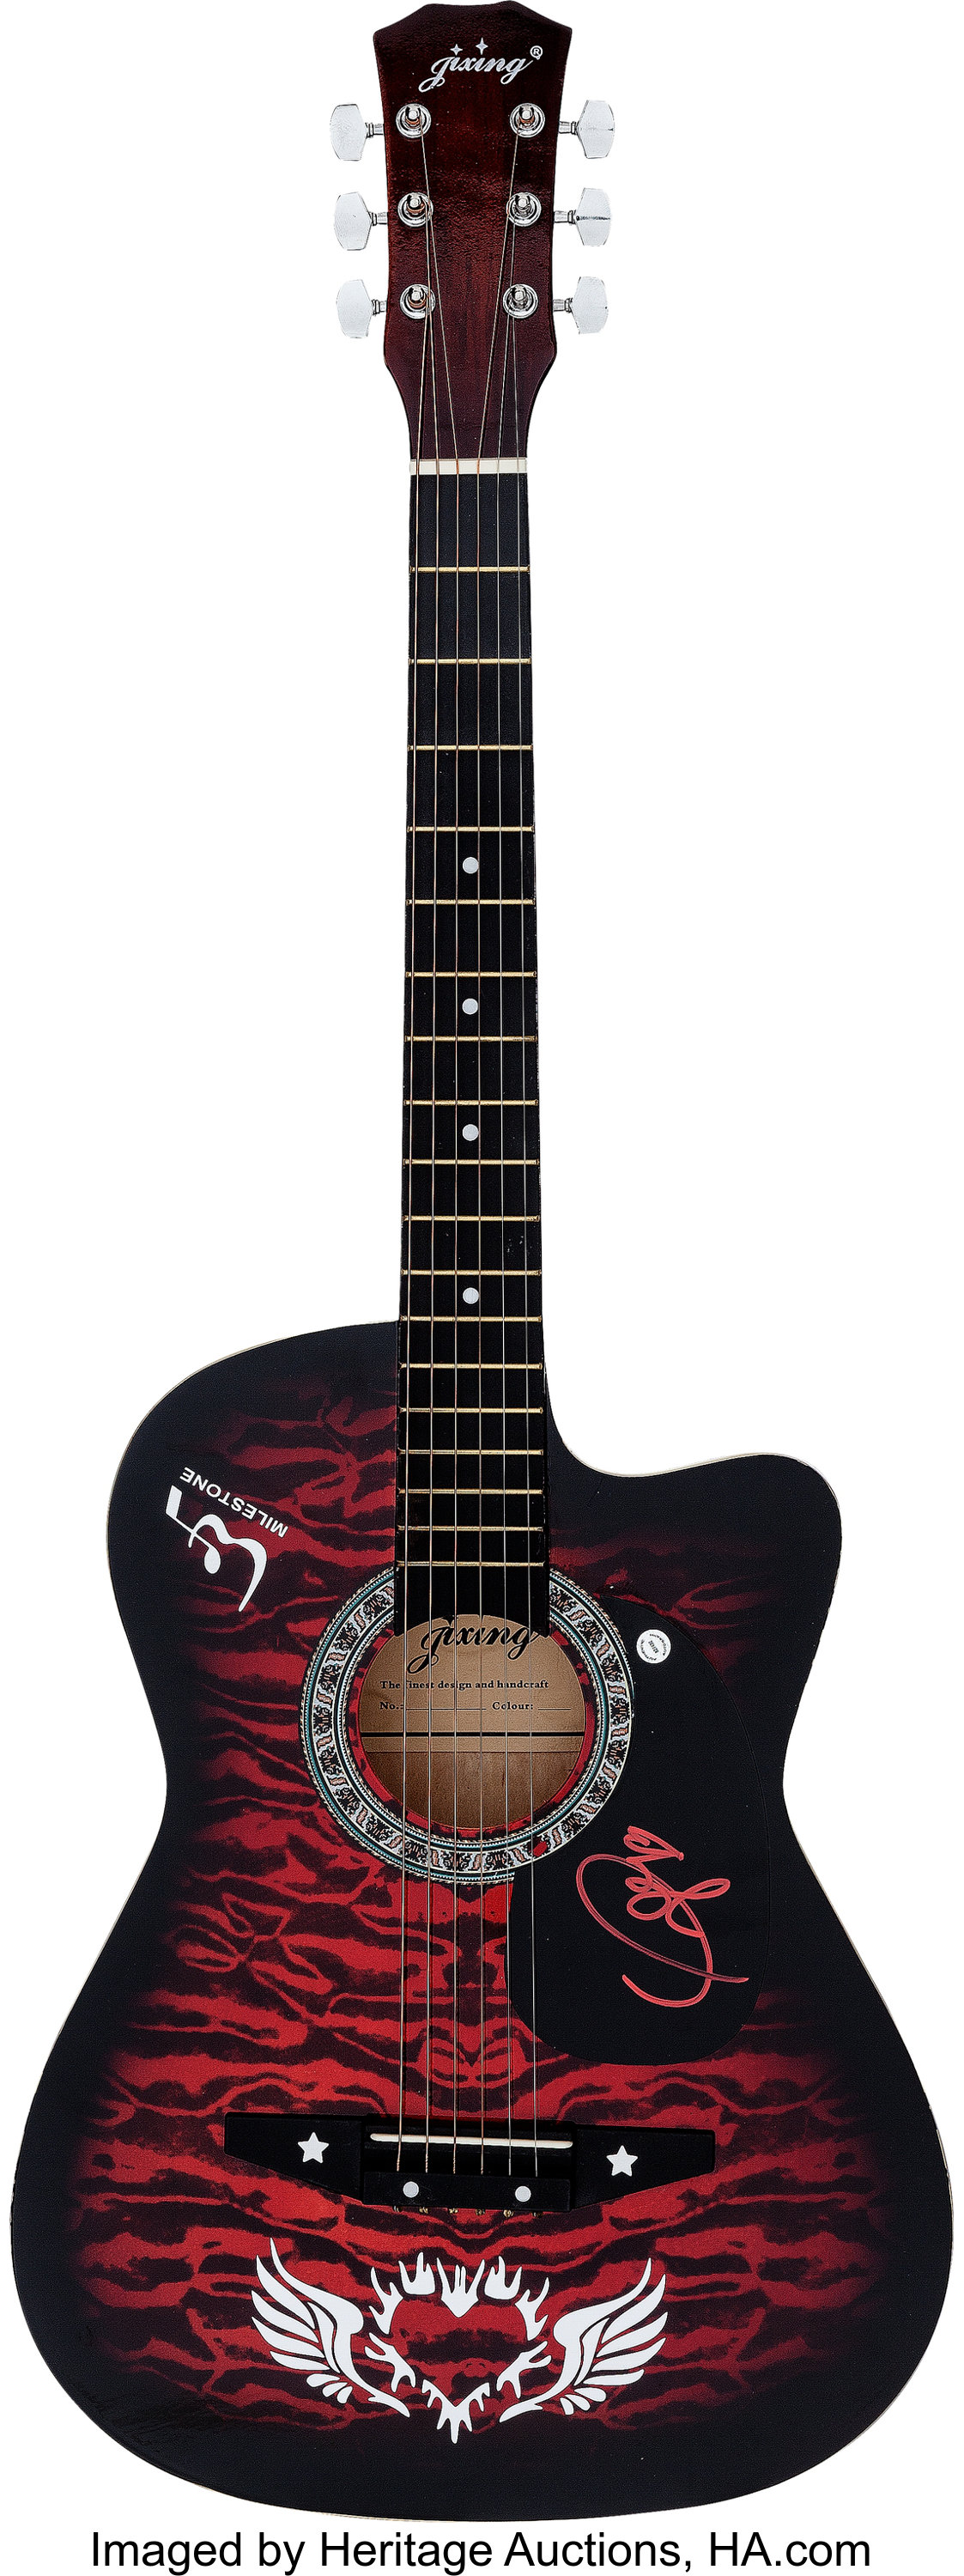 Taylor Signature TSBT Taylor Swift « Acoustic Guitar |Taylor Swifts Acoustic Guitar